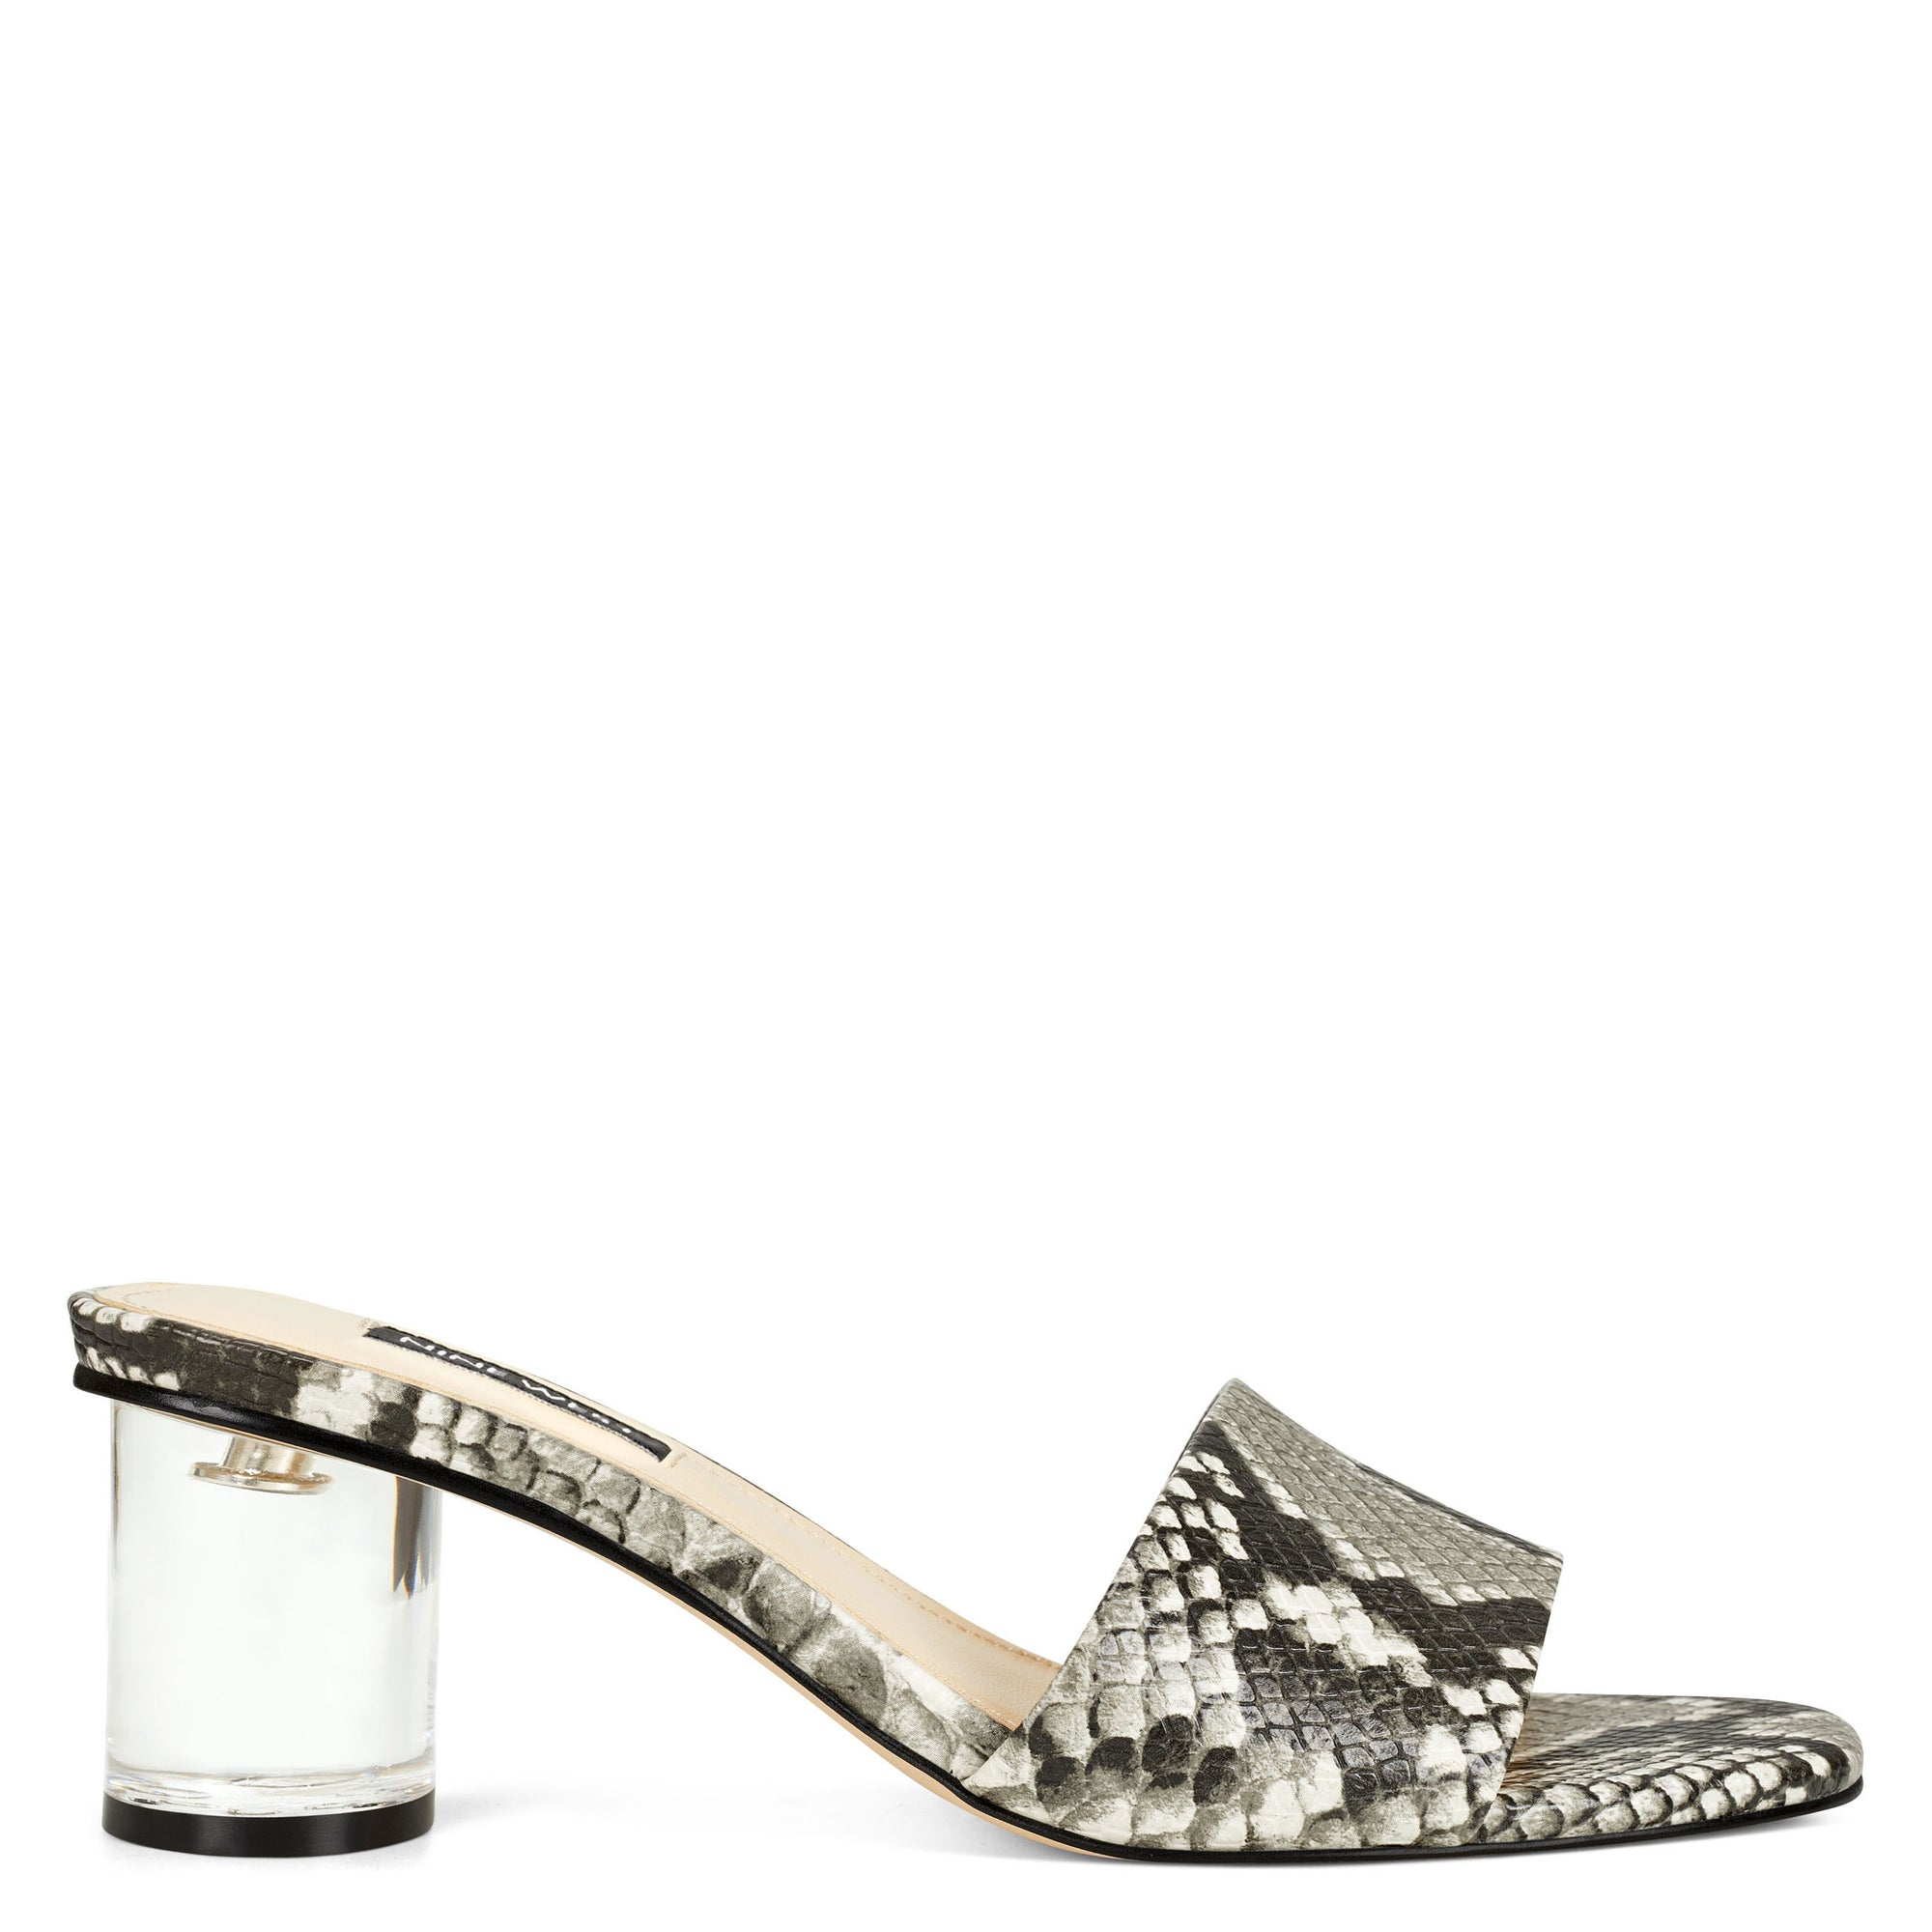 fab-open-toe-slide-sandals-in-snake-print